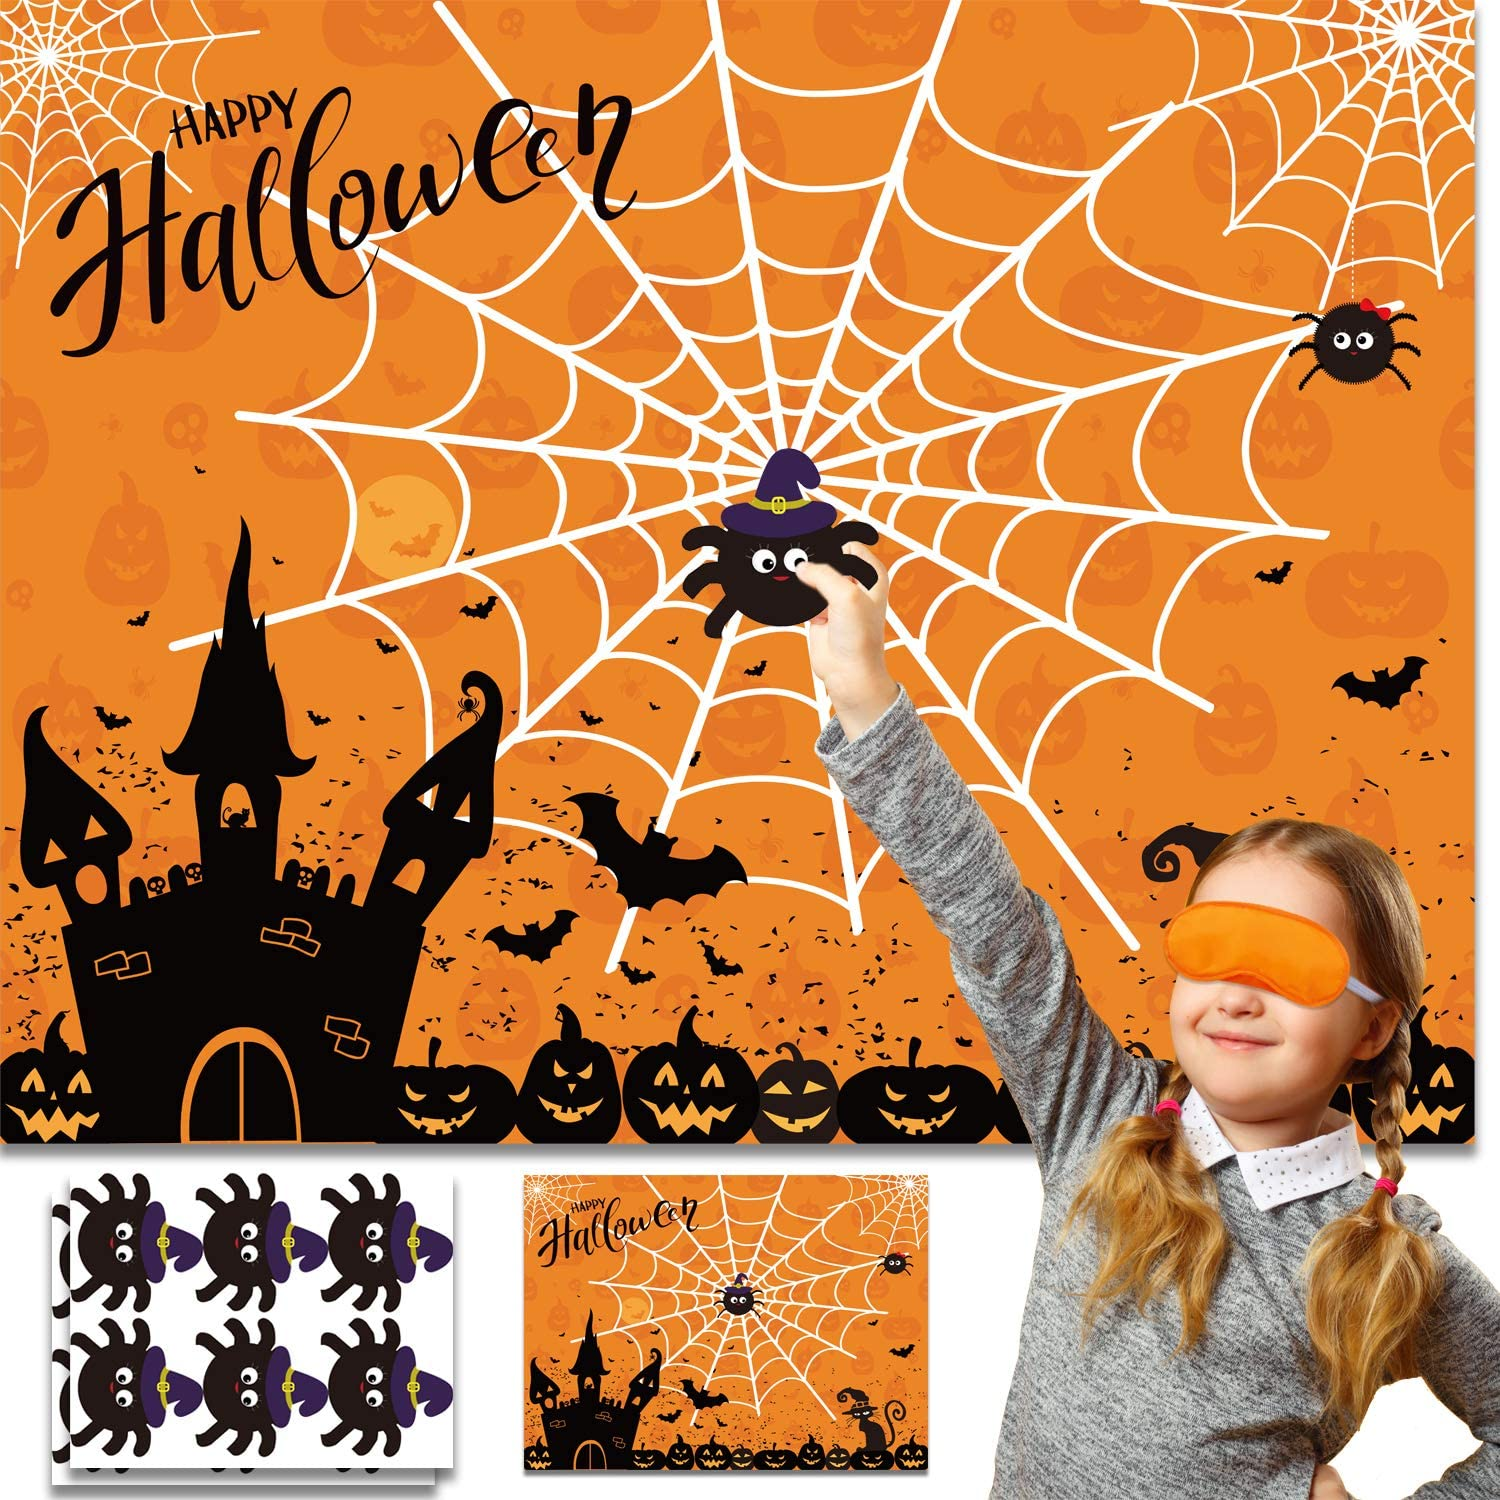 Halloween Party Games Pin The Spider on The Web Game Reusable Pin Game Spider Web Halloween Gift Halloween Party Favor Supplies for Kids Girls Boys: Toys & Games